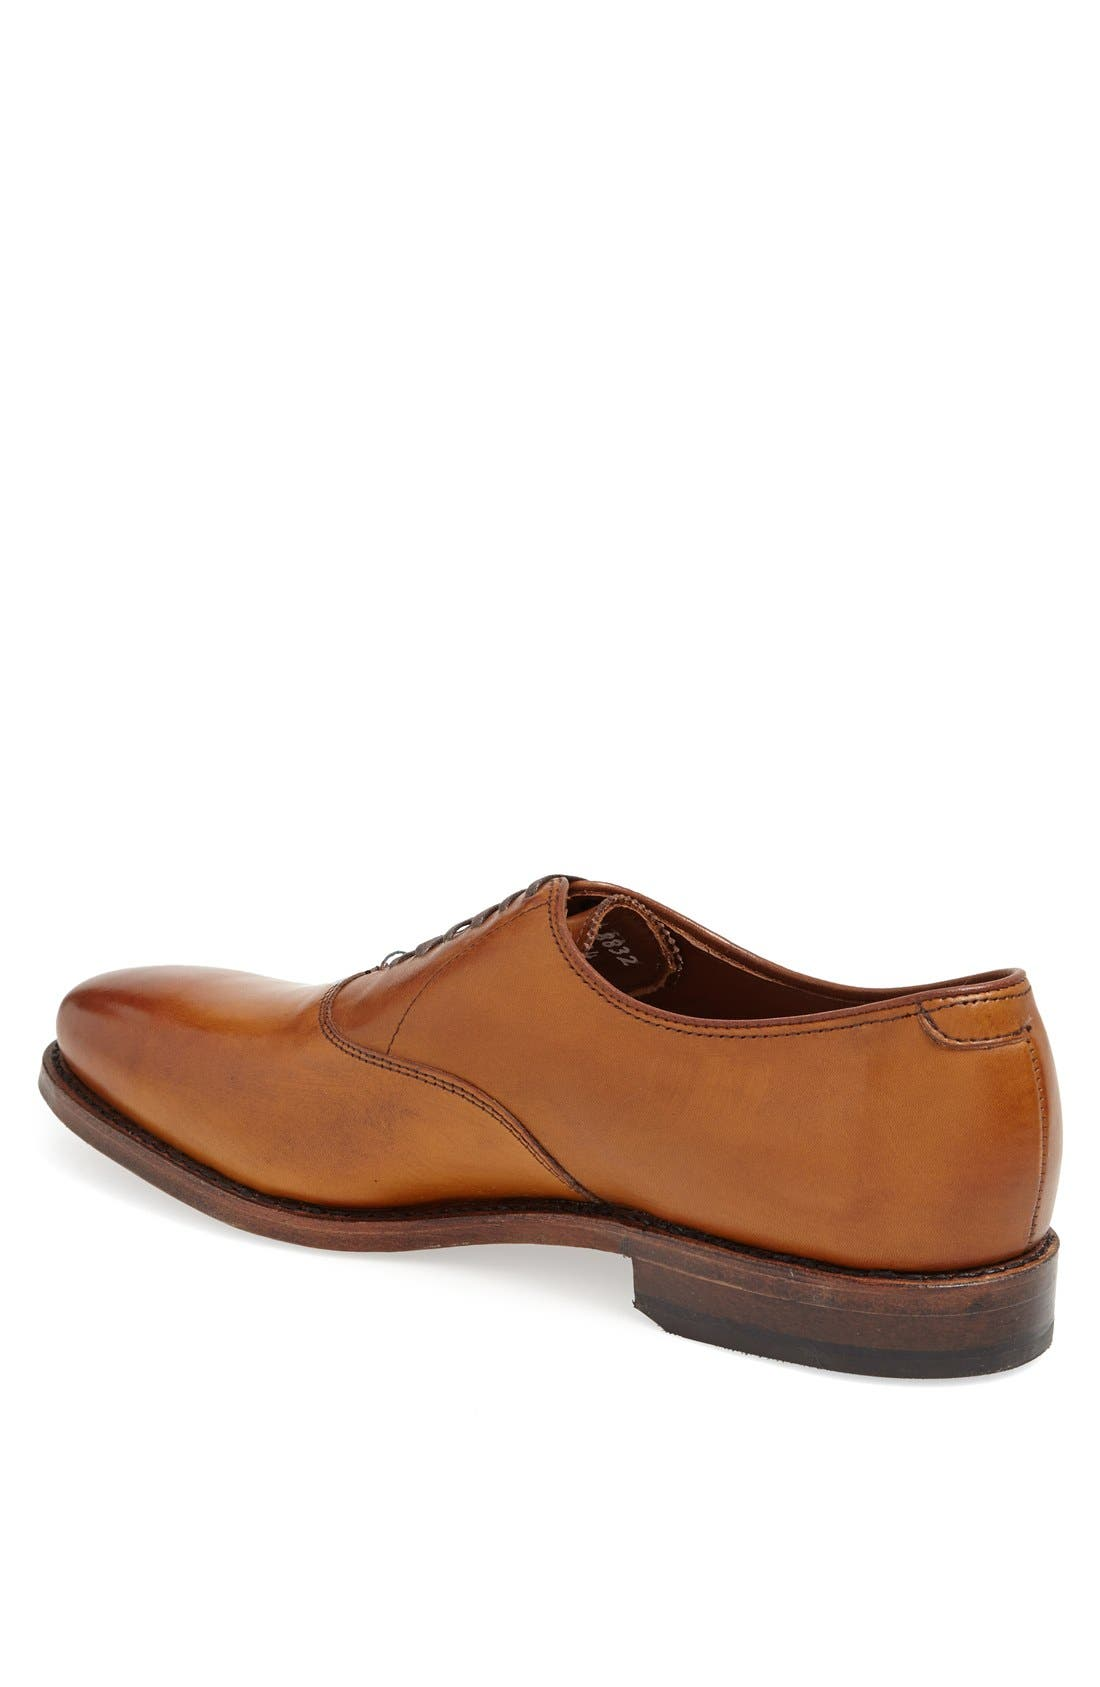 ALLEN EDMONDS, Carlyle Plain Toe Oxford, Alternate thumbnail 2, color, WALNUT LEATHER